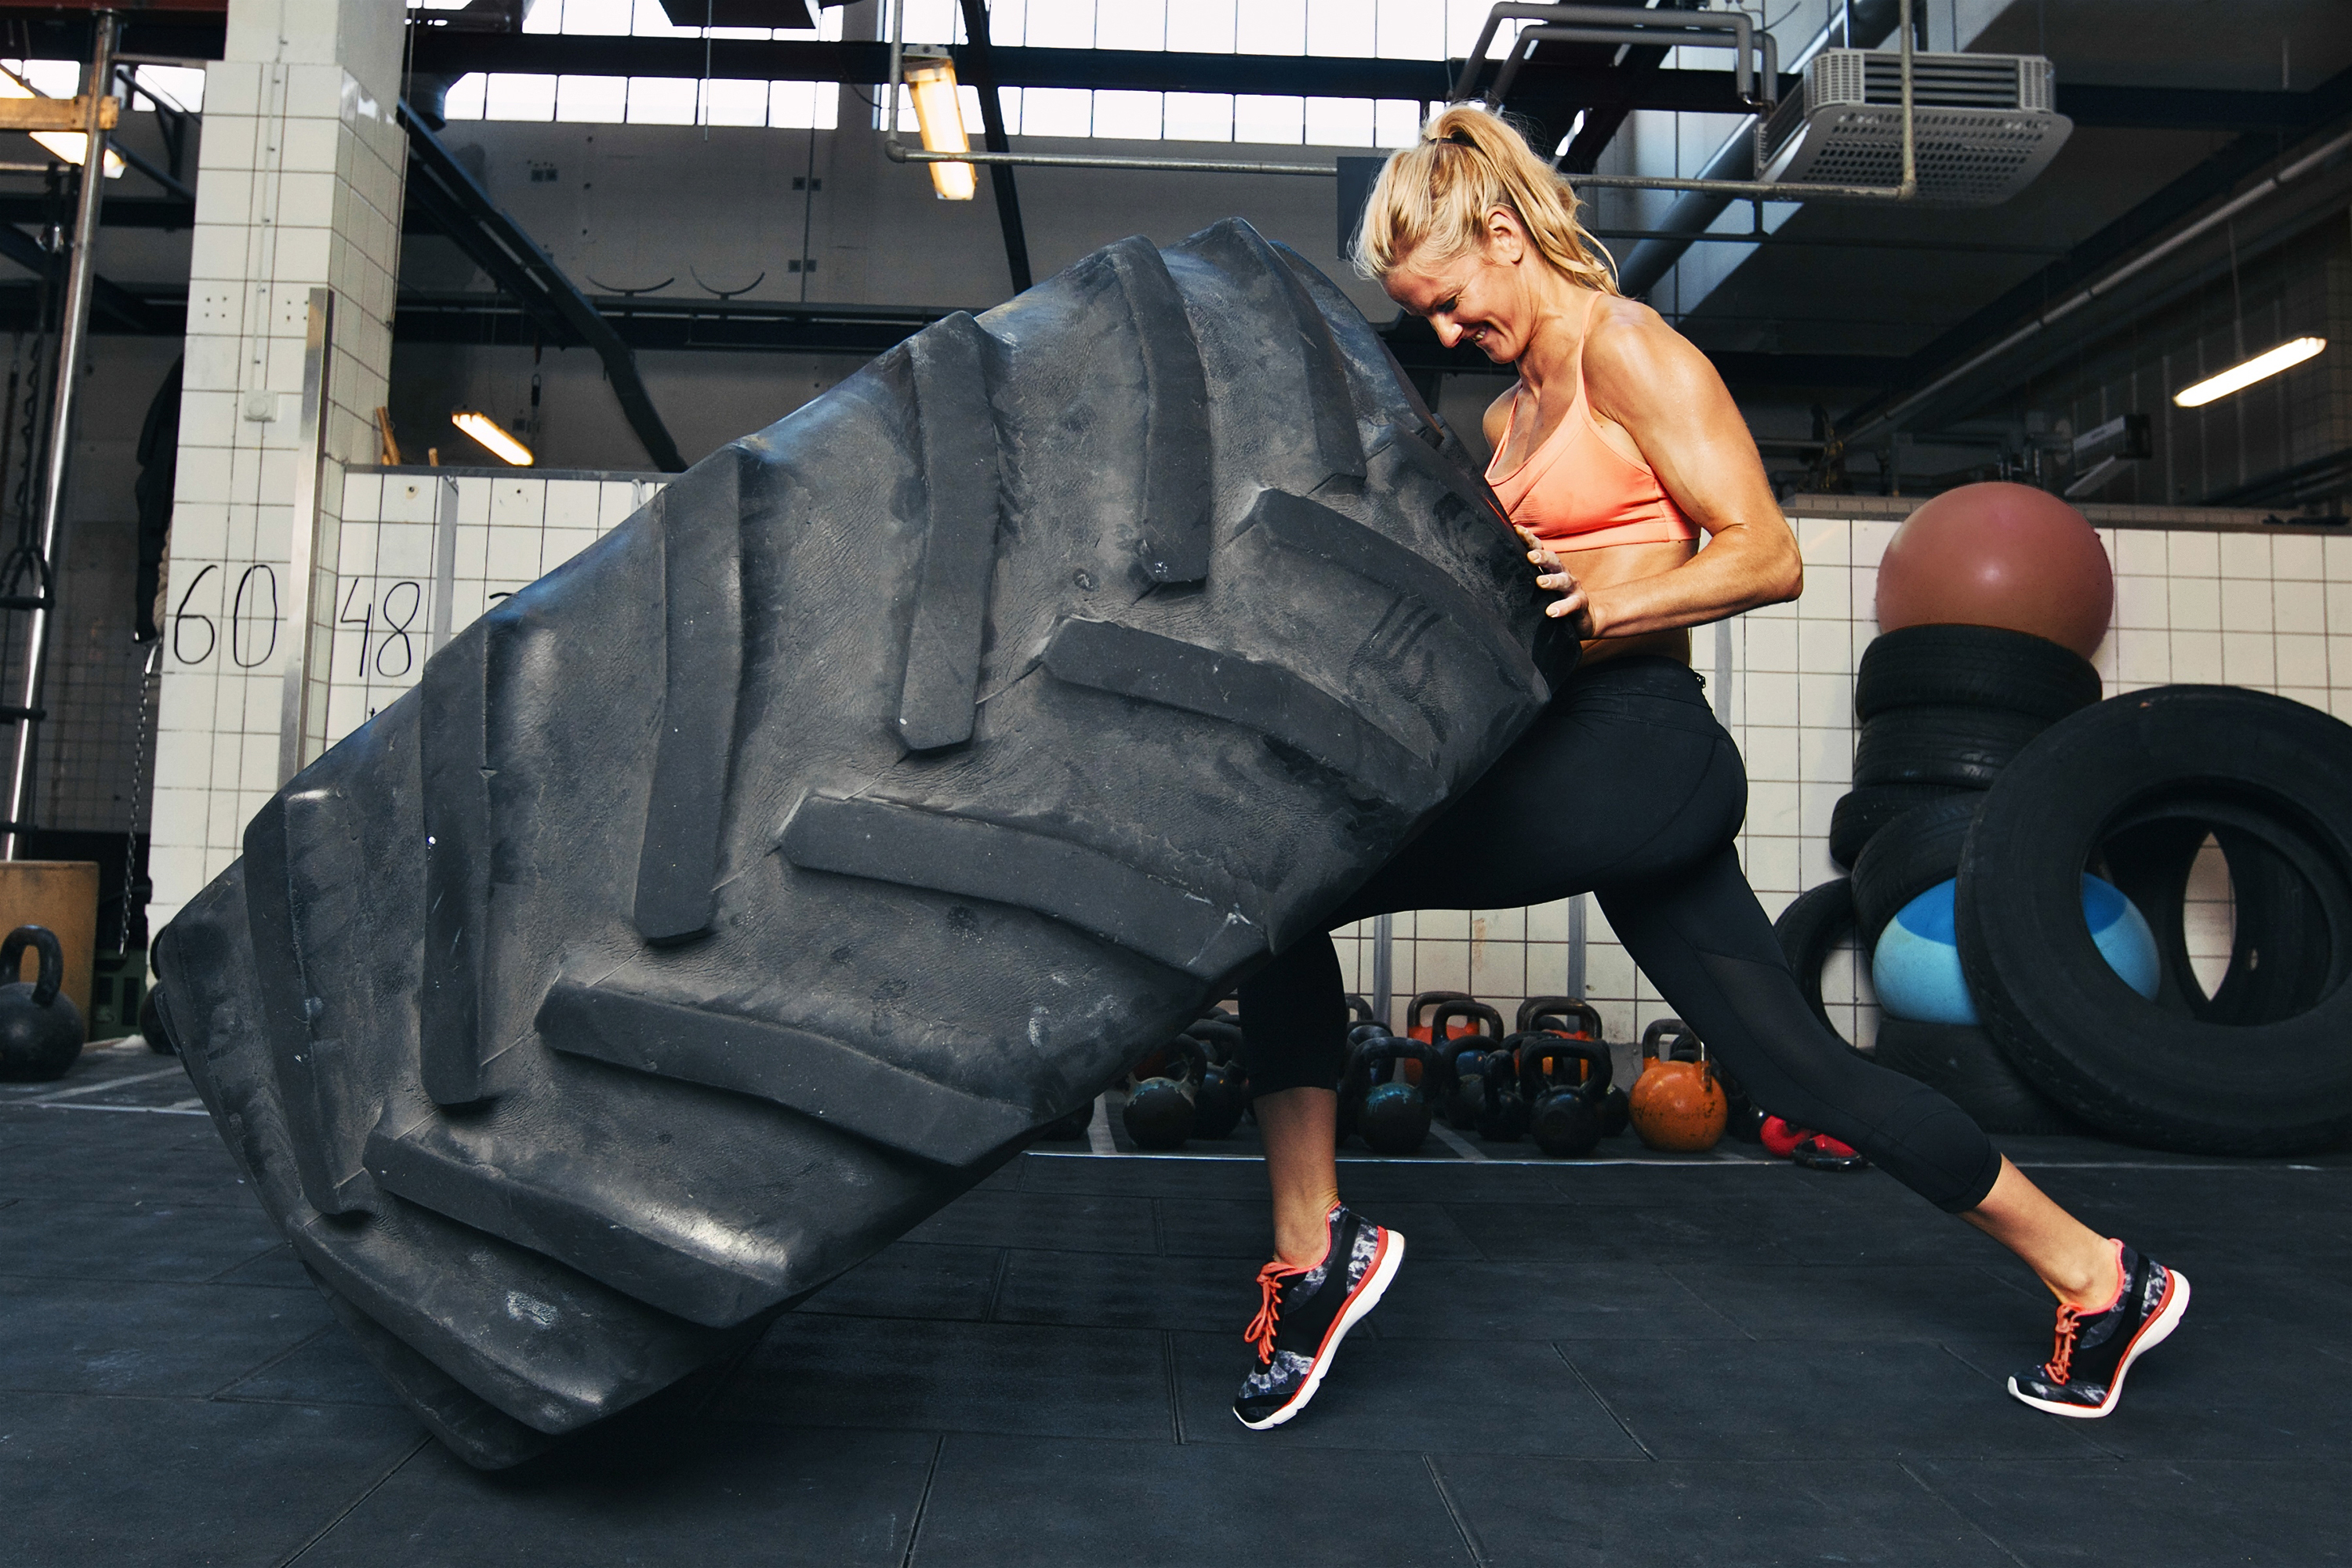 Woman Flipping a Huge Tire at the Gym